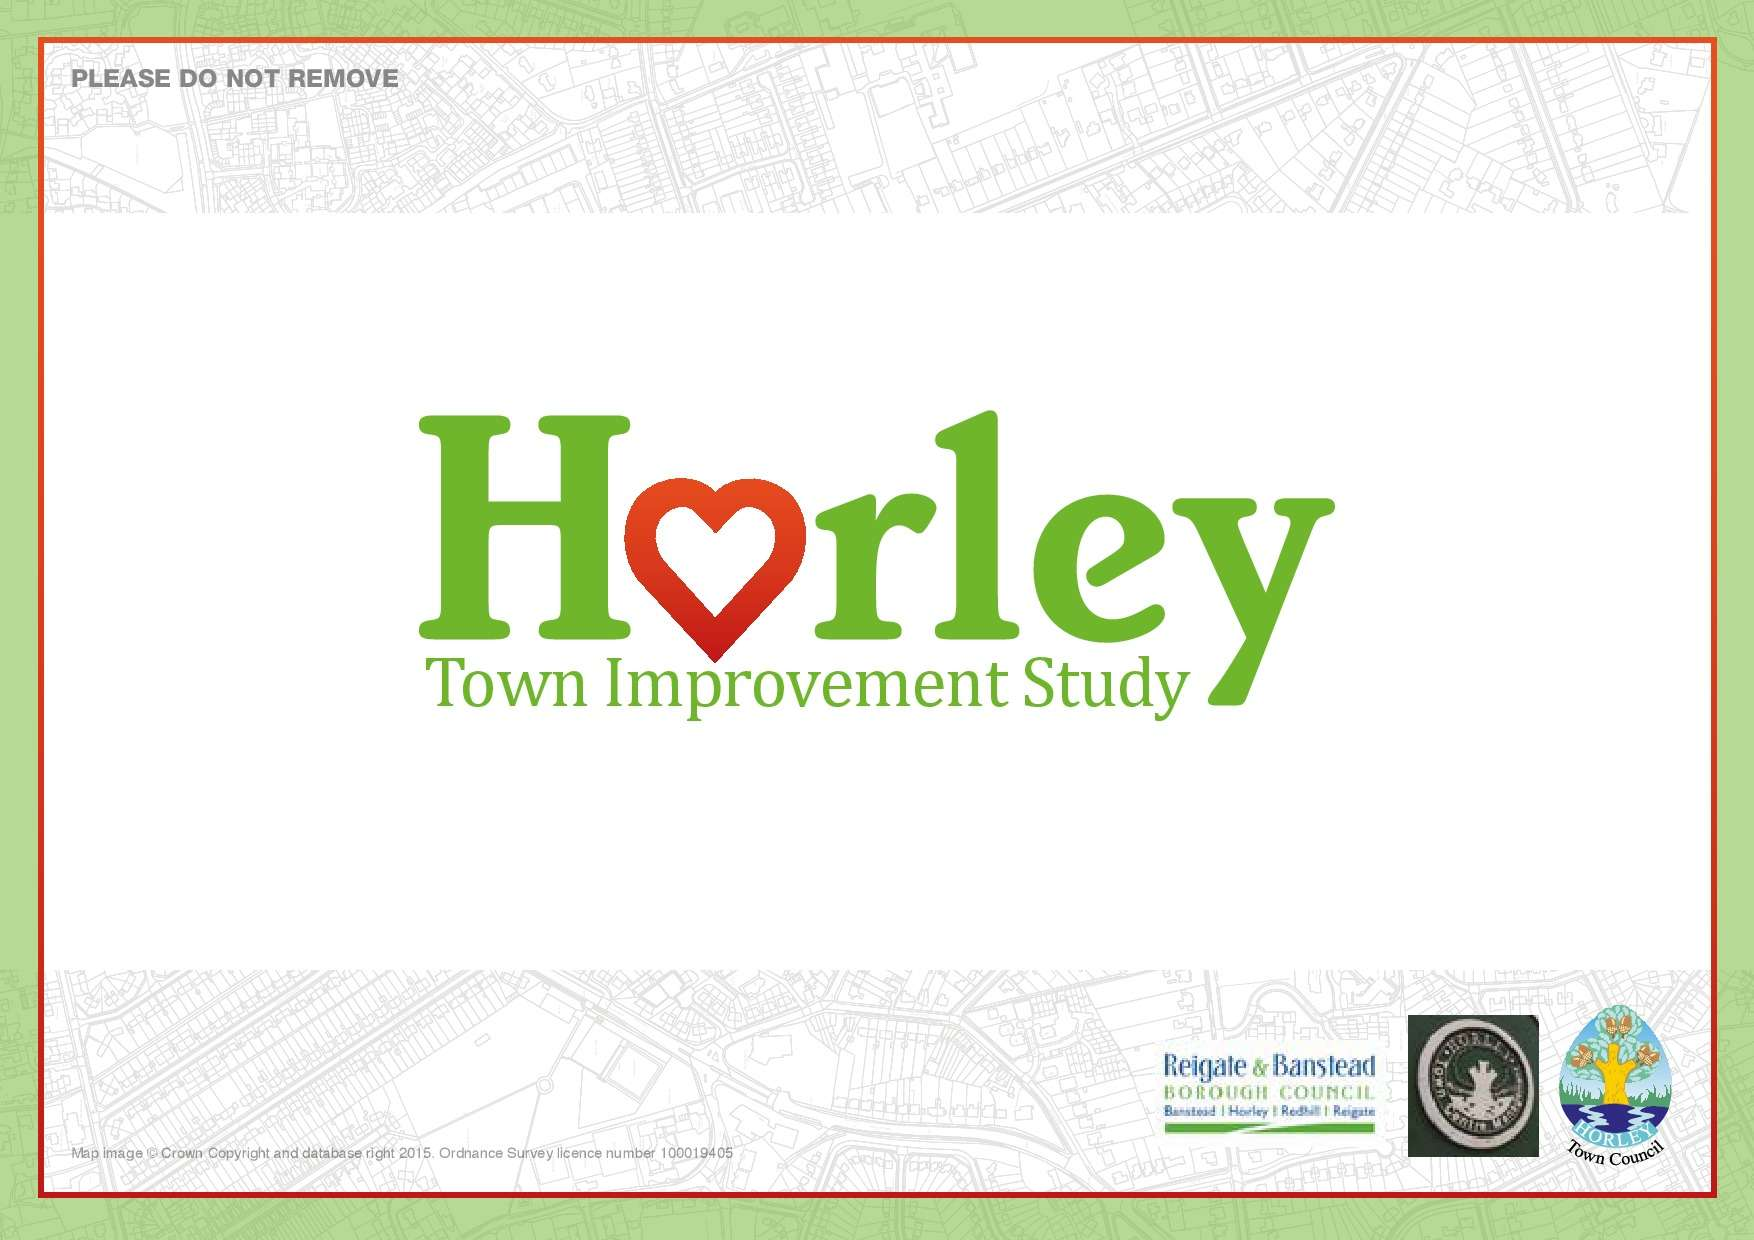 Horley Town Improvement Study